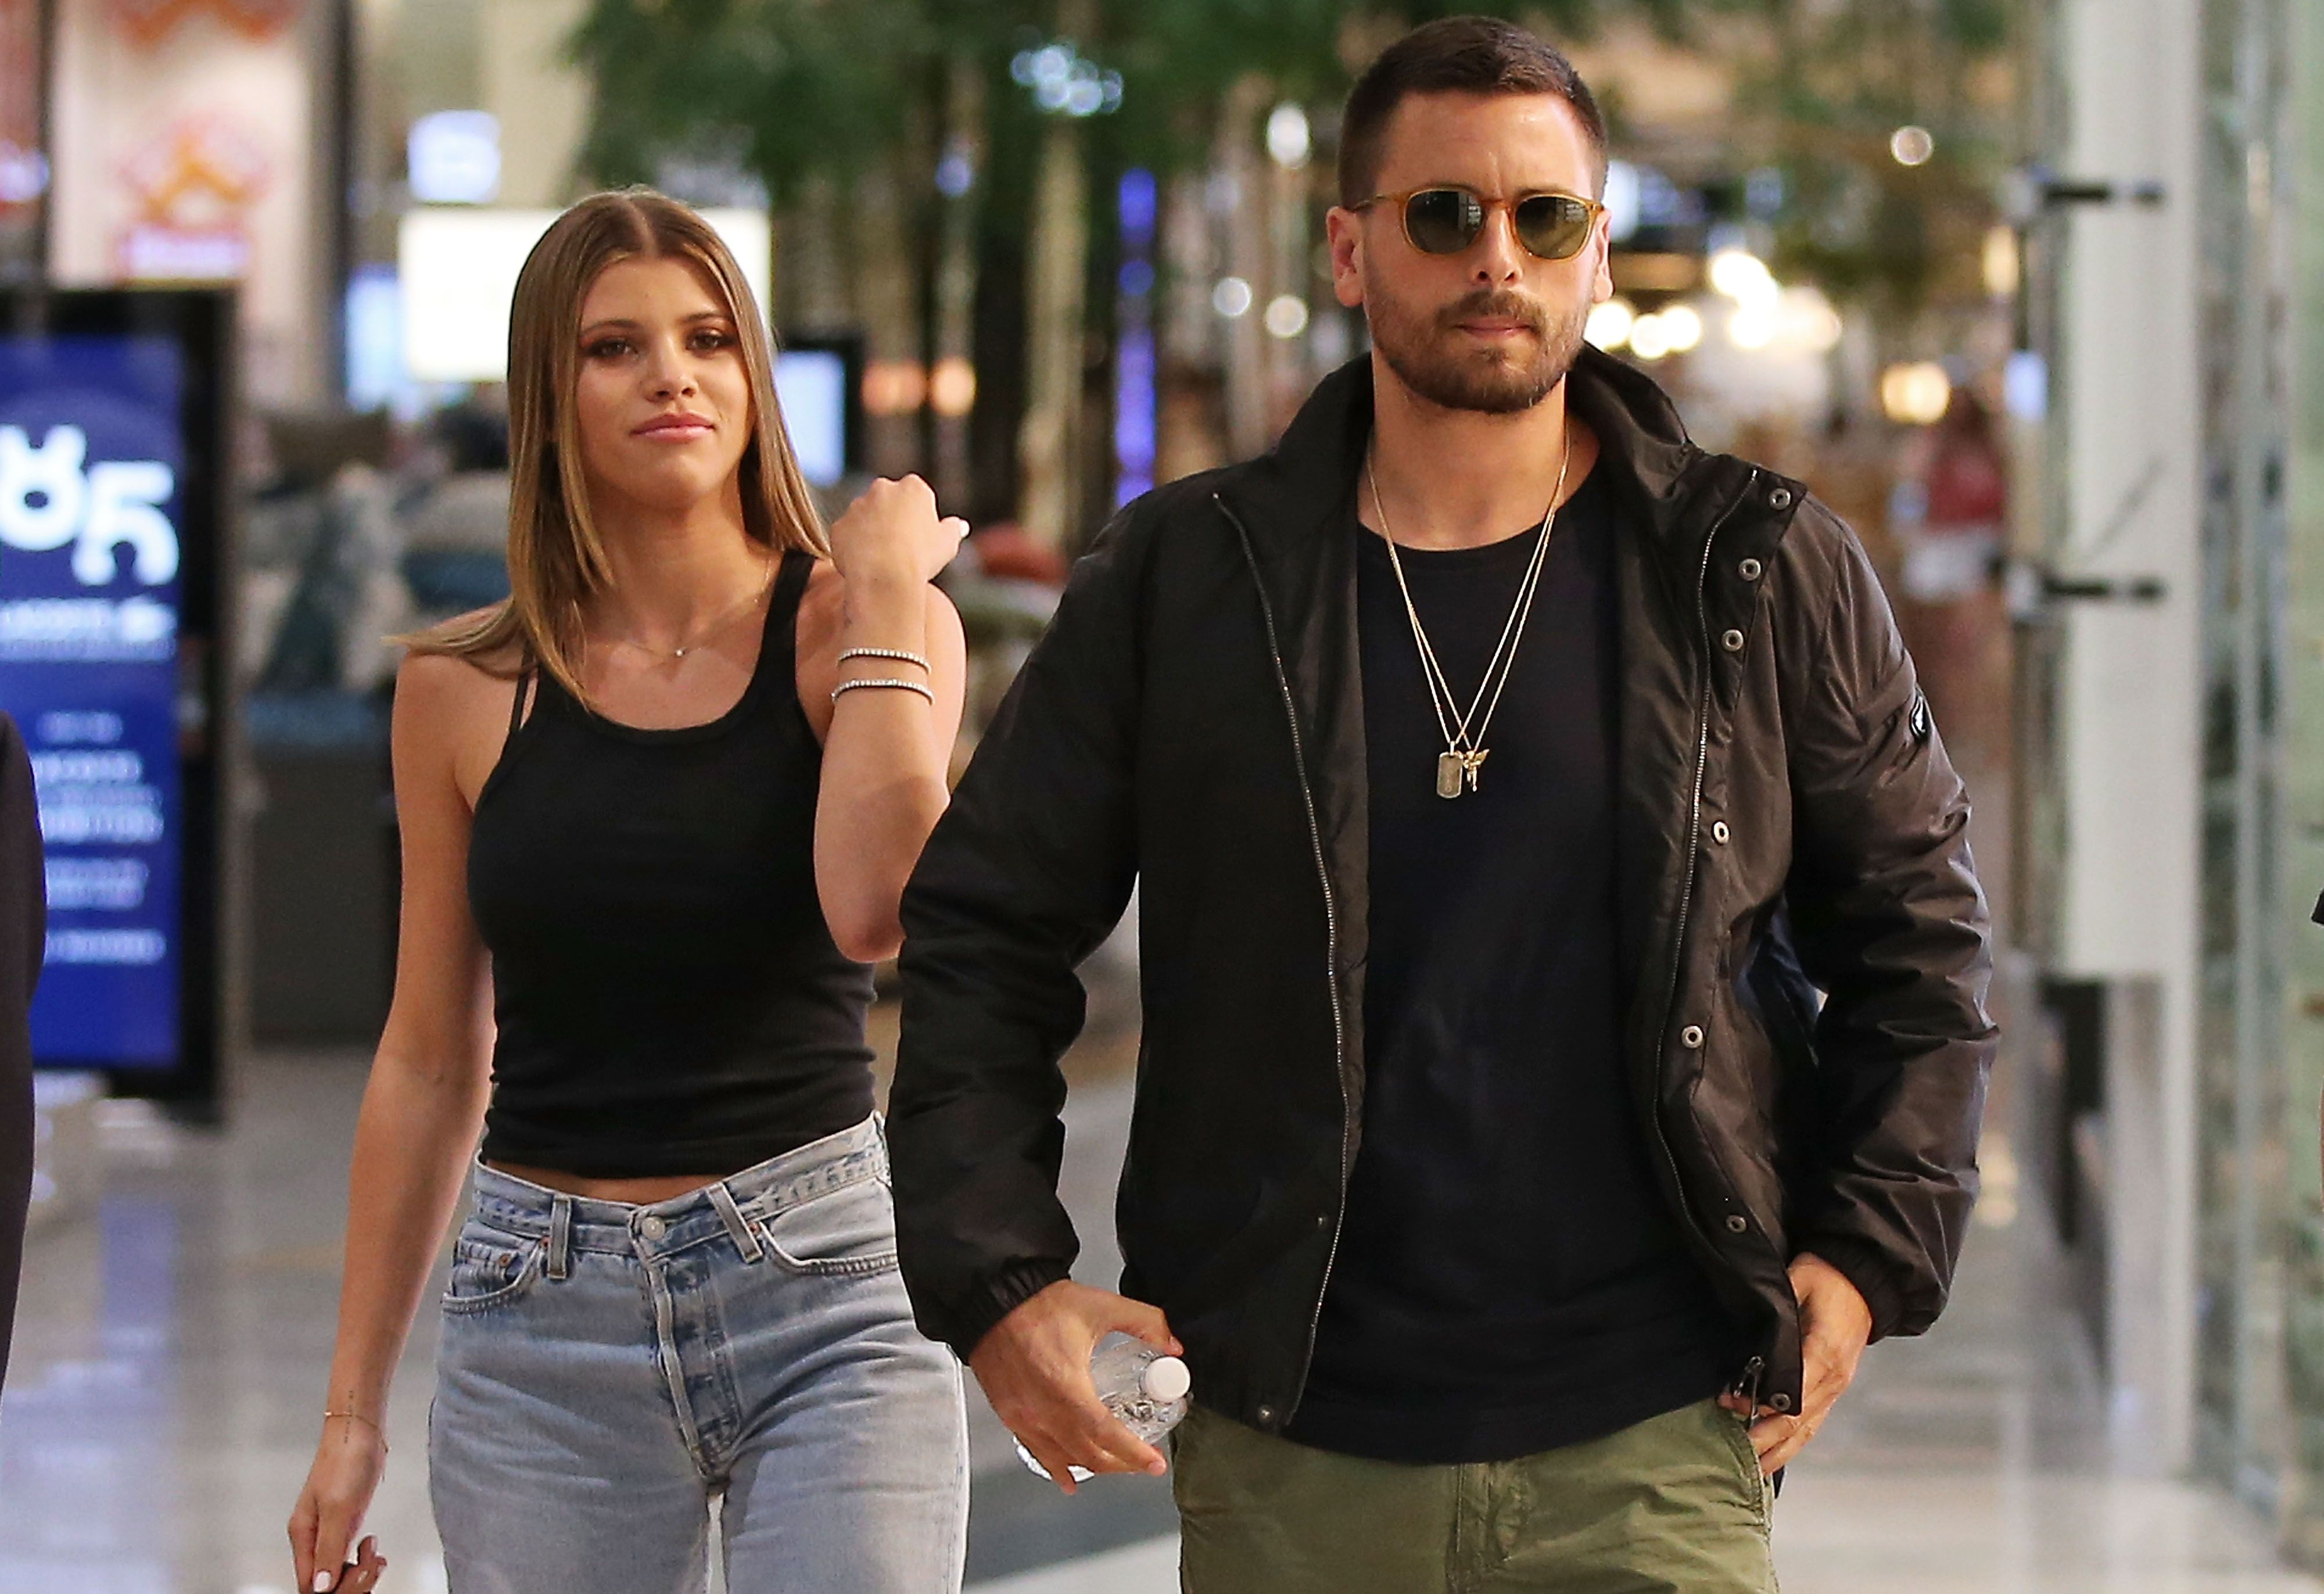 Scott Disick & Sofia Richie Split After Over 3 Years Together